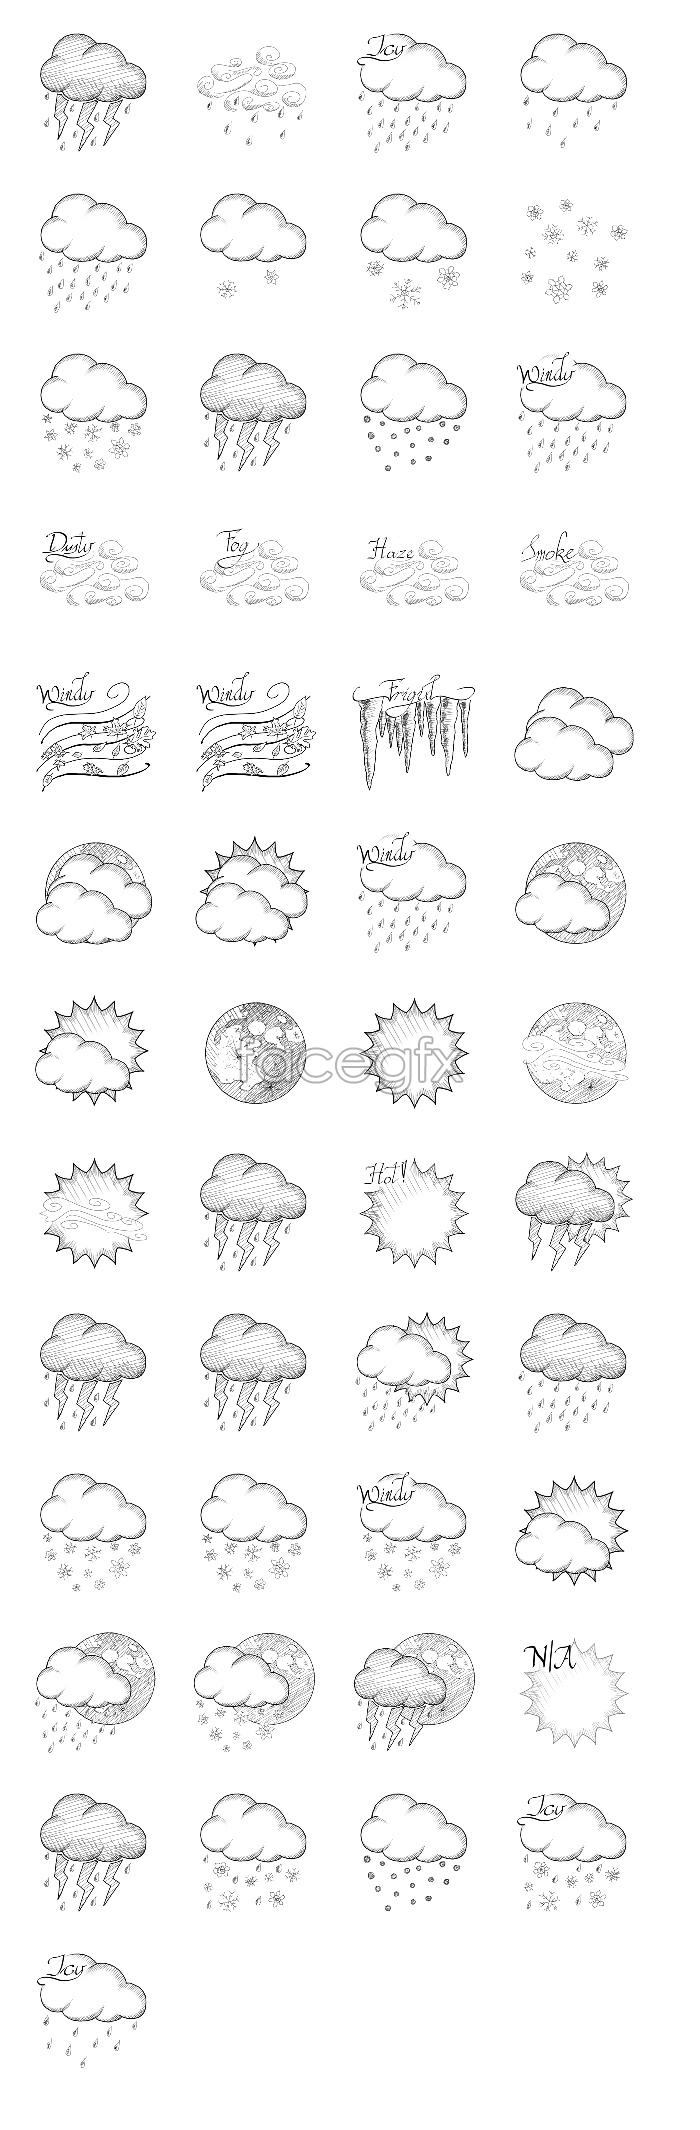 Sketch weather forecast icons